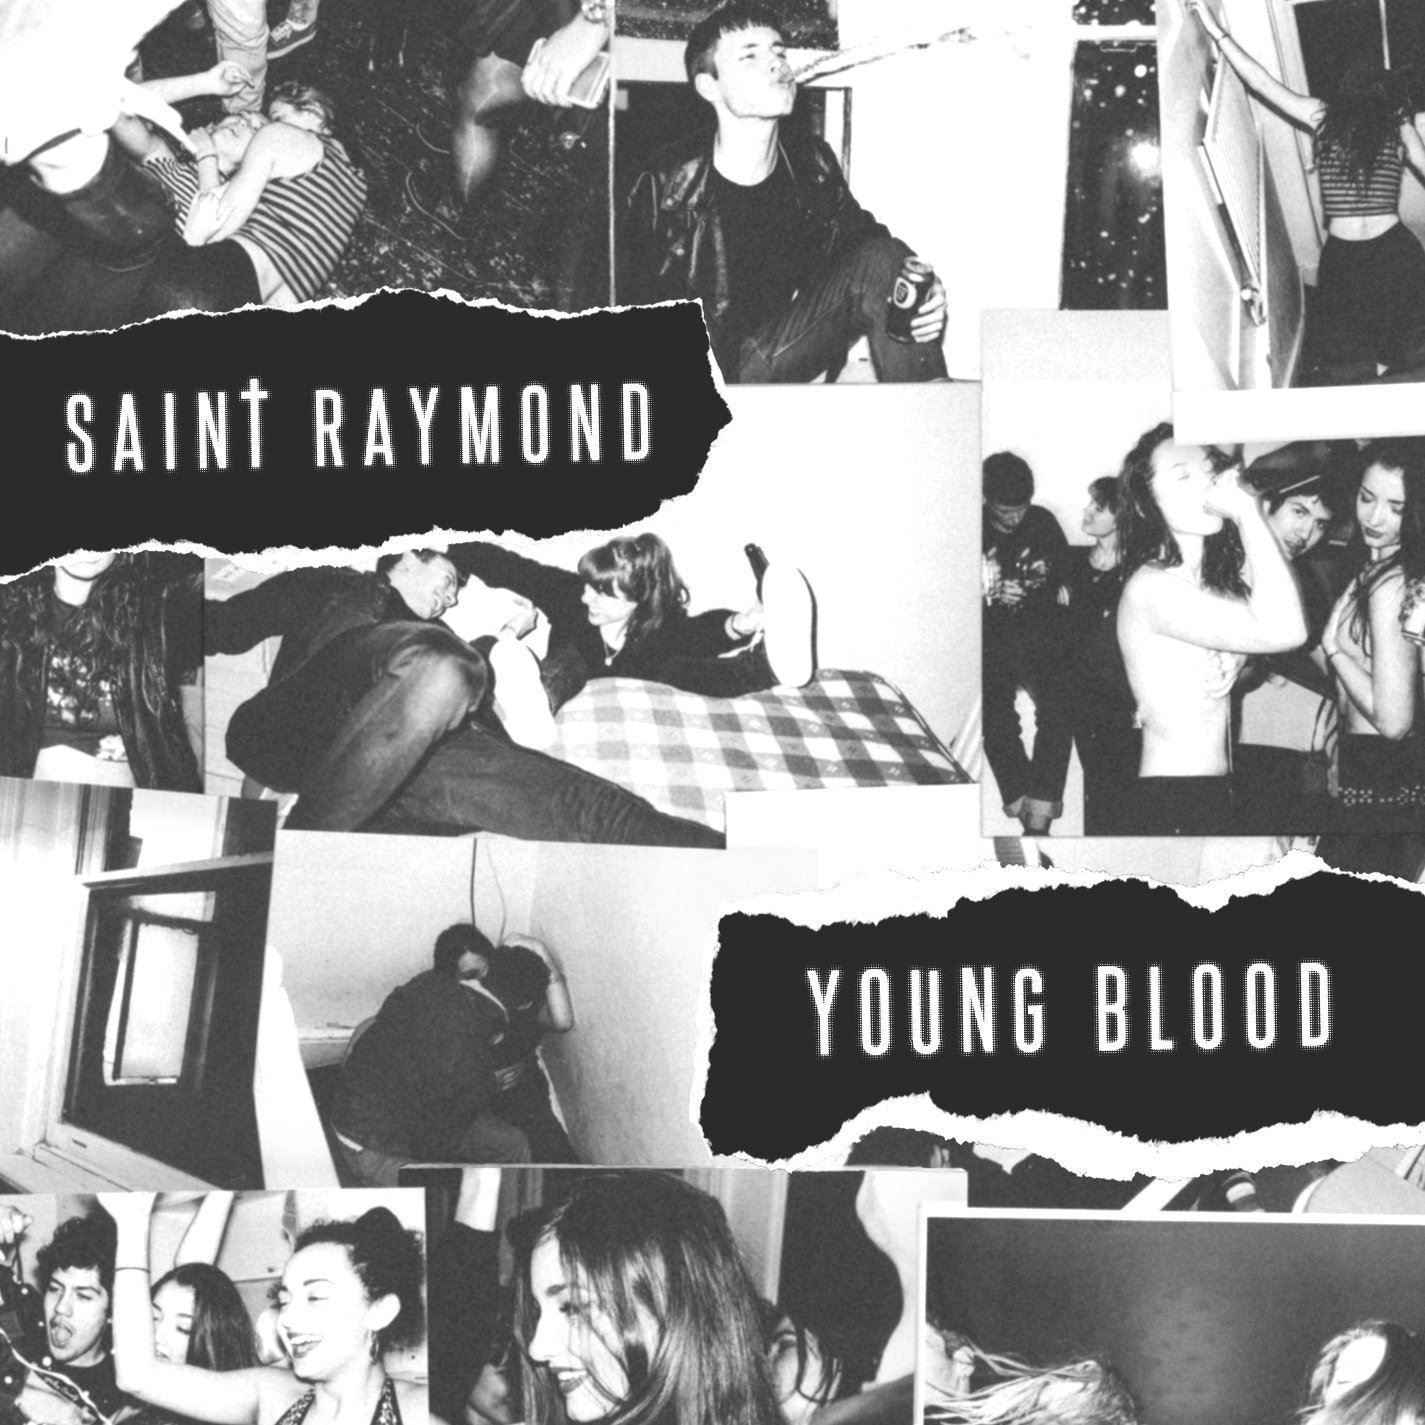 Saint Raymond - Young Blood